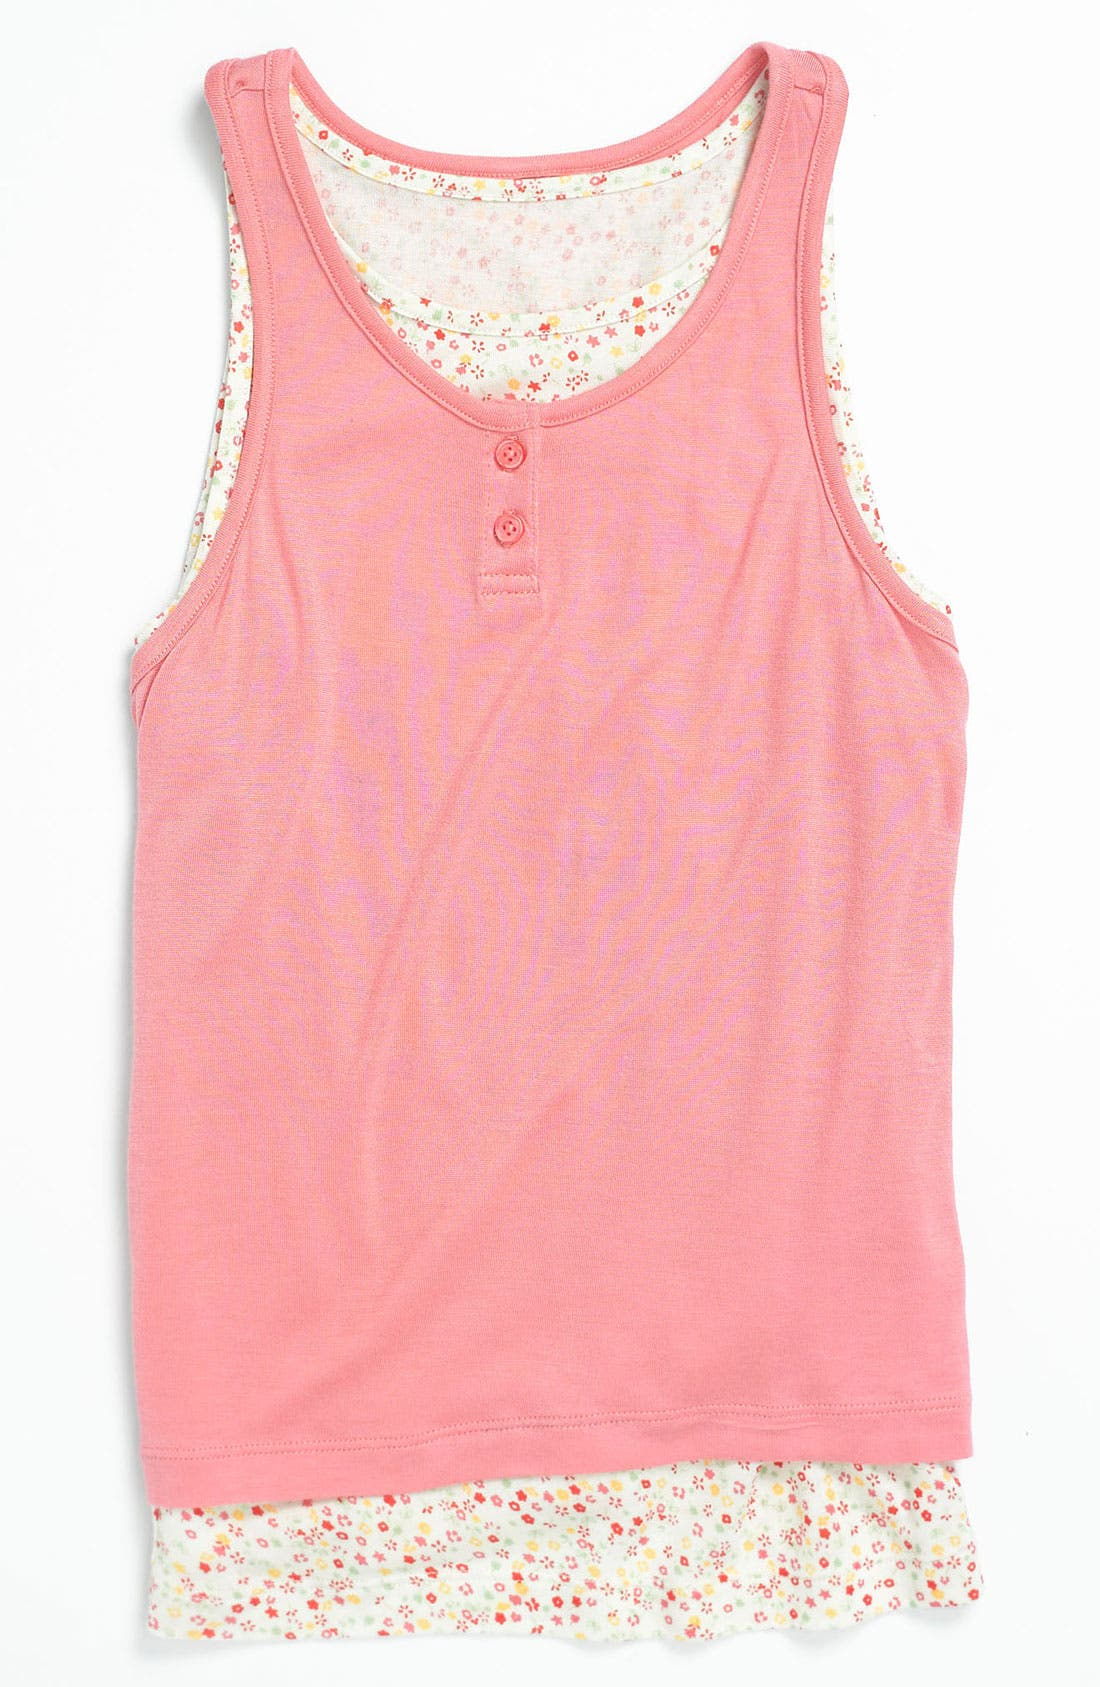 Alternate Image 1 Selected - Tucker + Tate 'Piper' Tank Top (Big Girls)